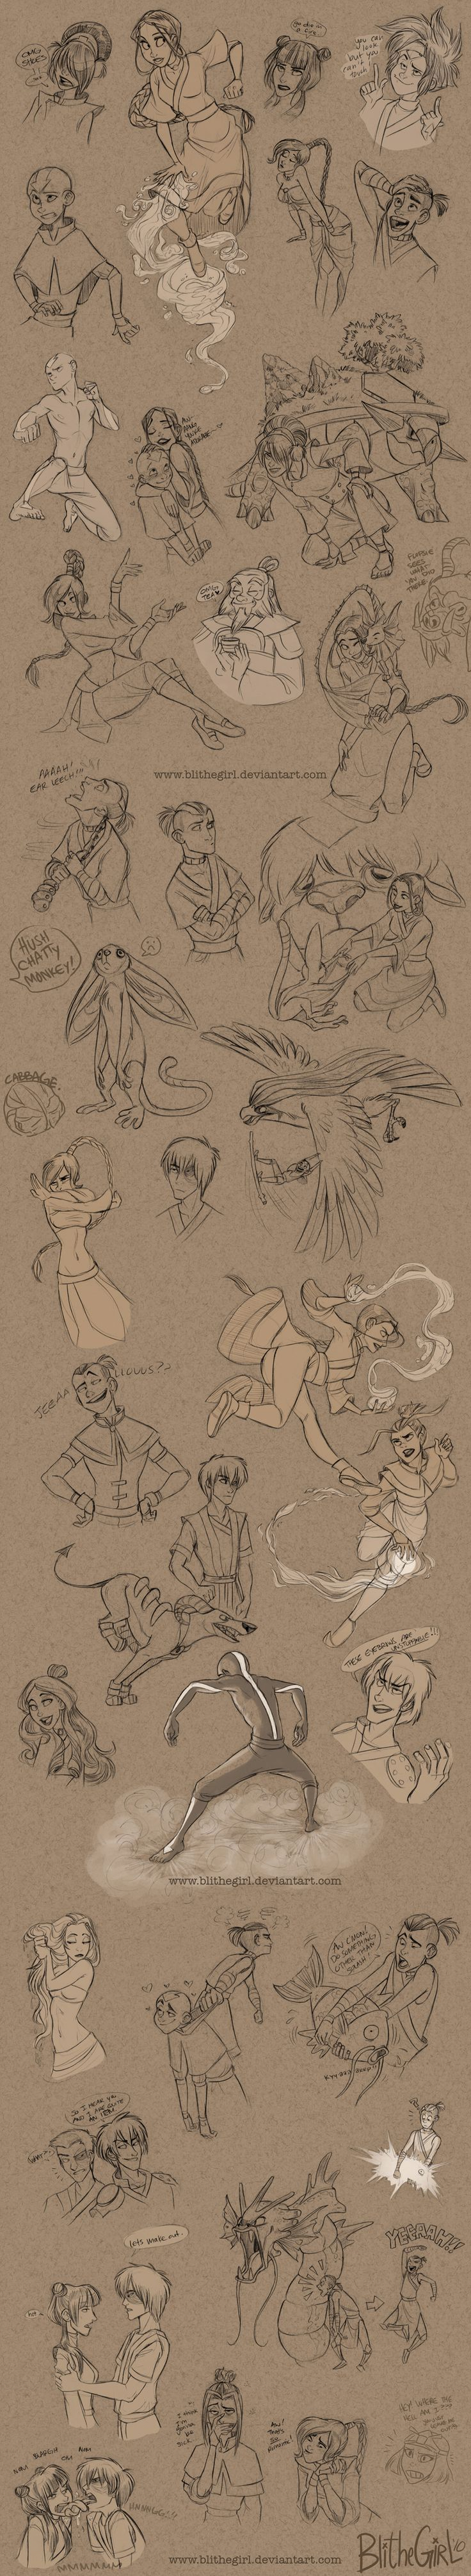 Avatard Dump by ~Blithegirl on deviantART ✤ || CHARACTER DESIGN REFERENCES | Sketches and Drawings